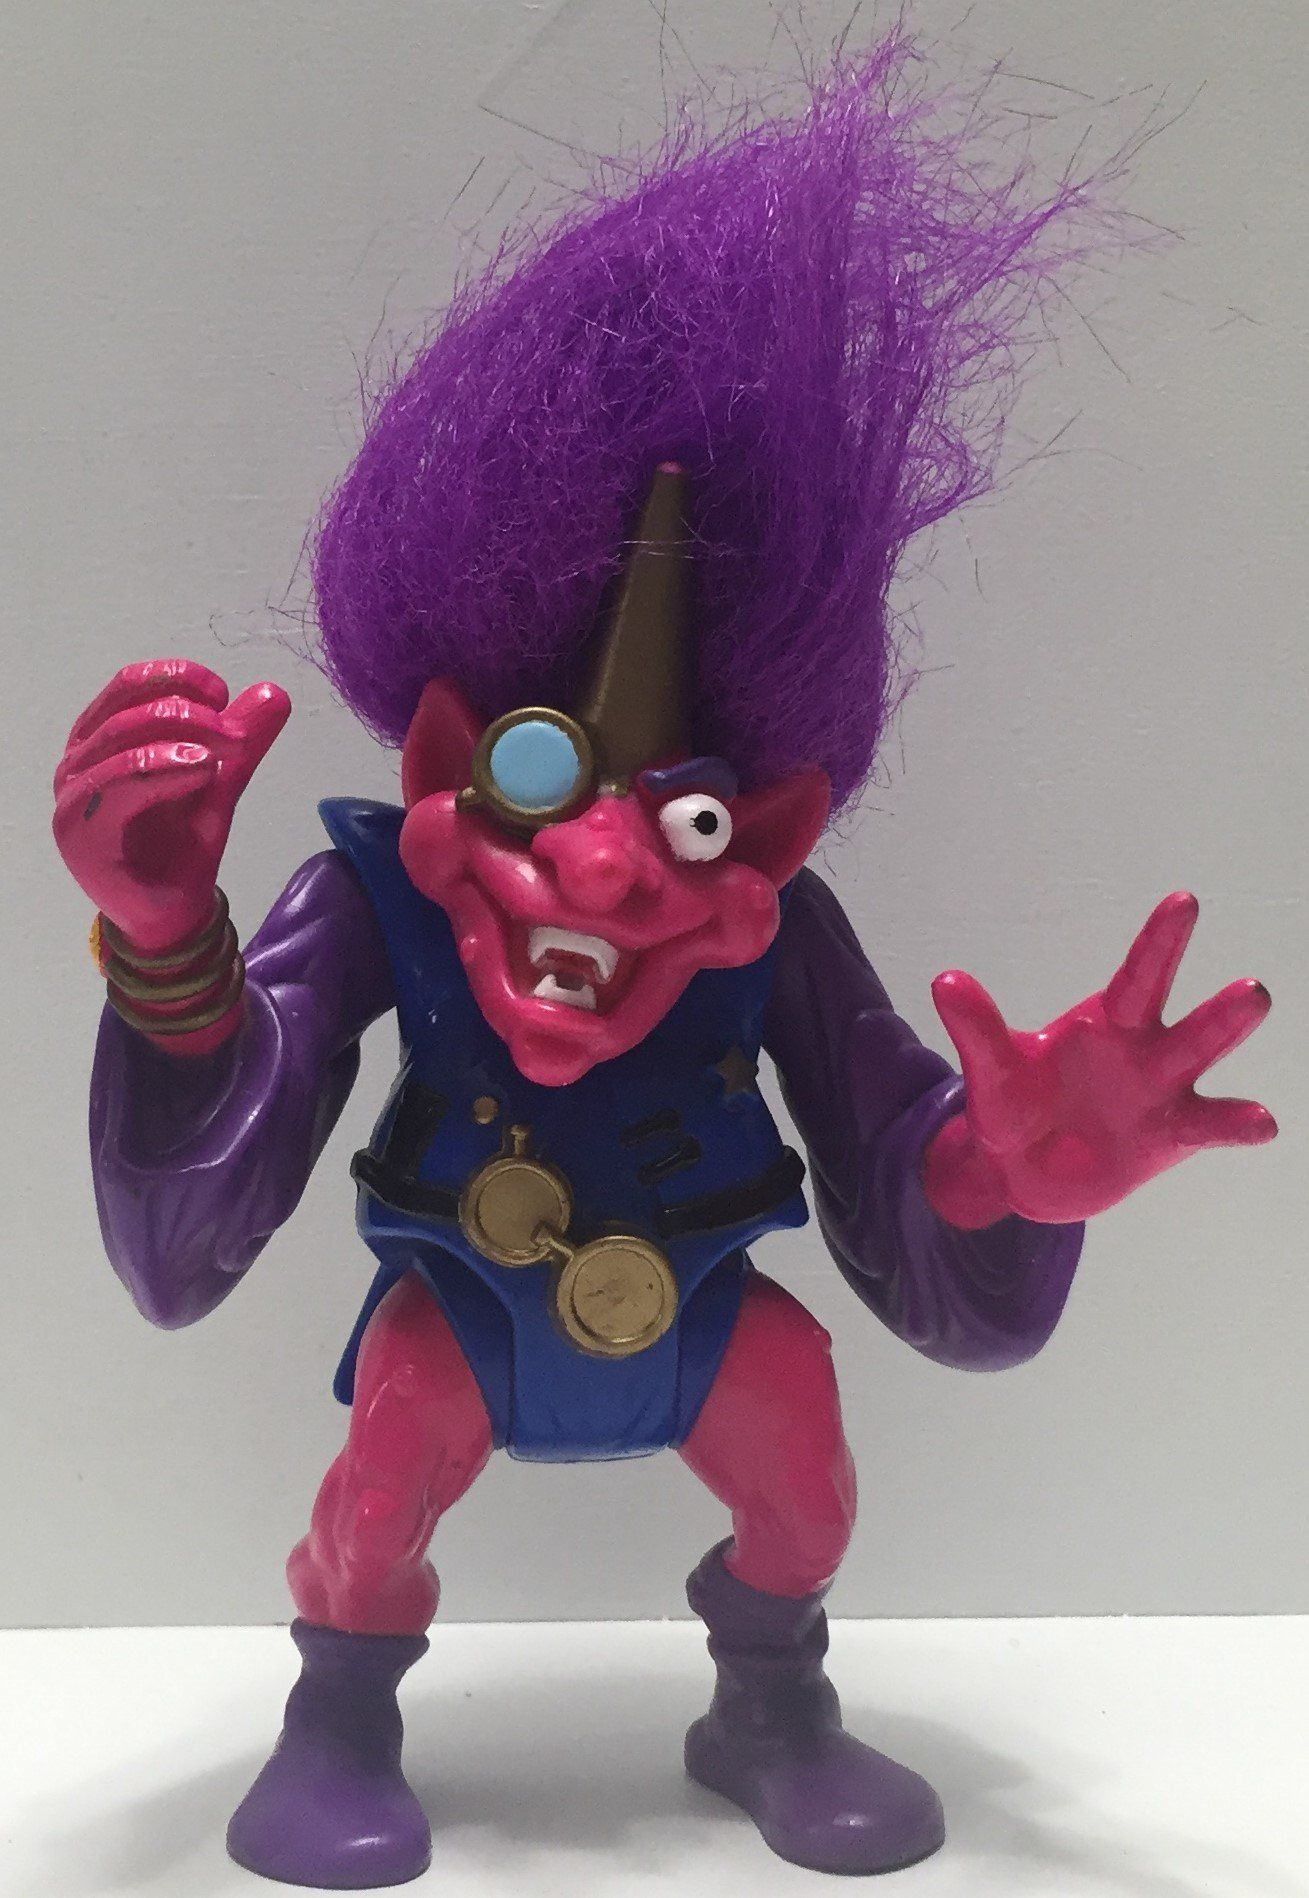 Images of vintage toys  We always have the hottest Vintage Toys at The Angry Spider Now